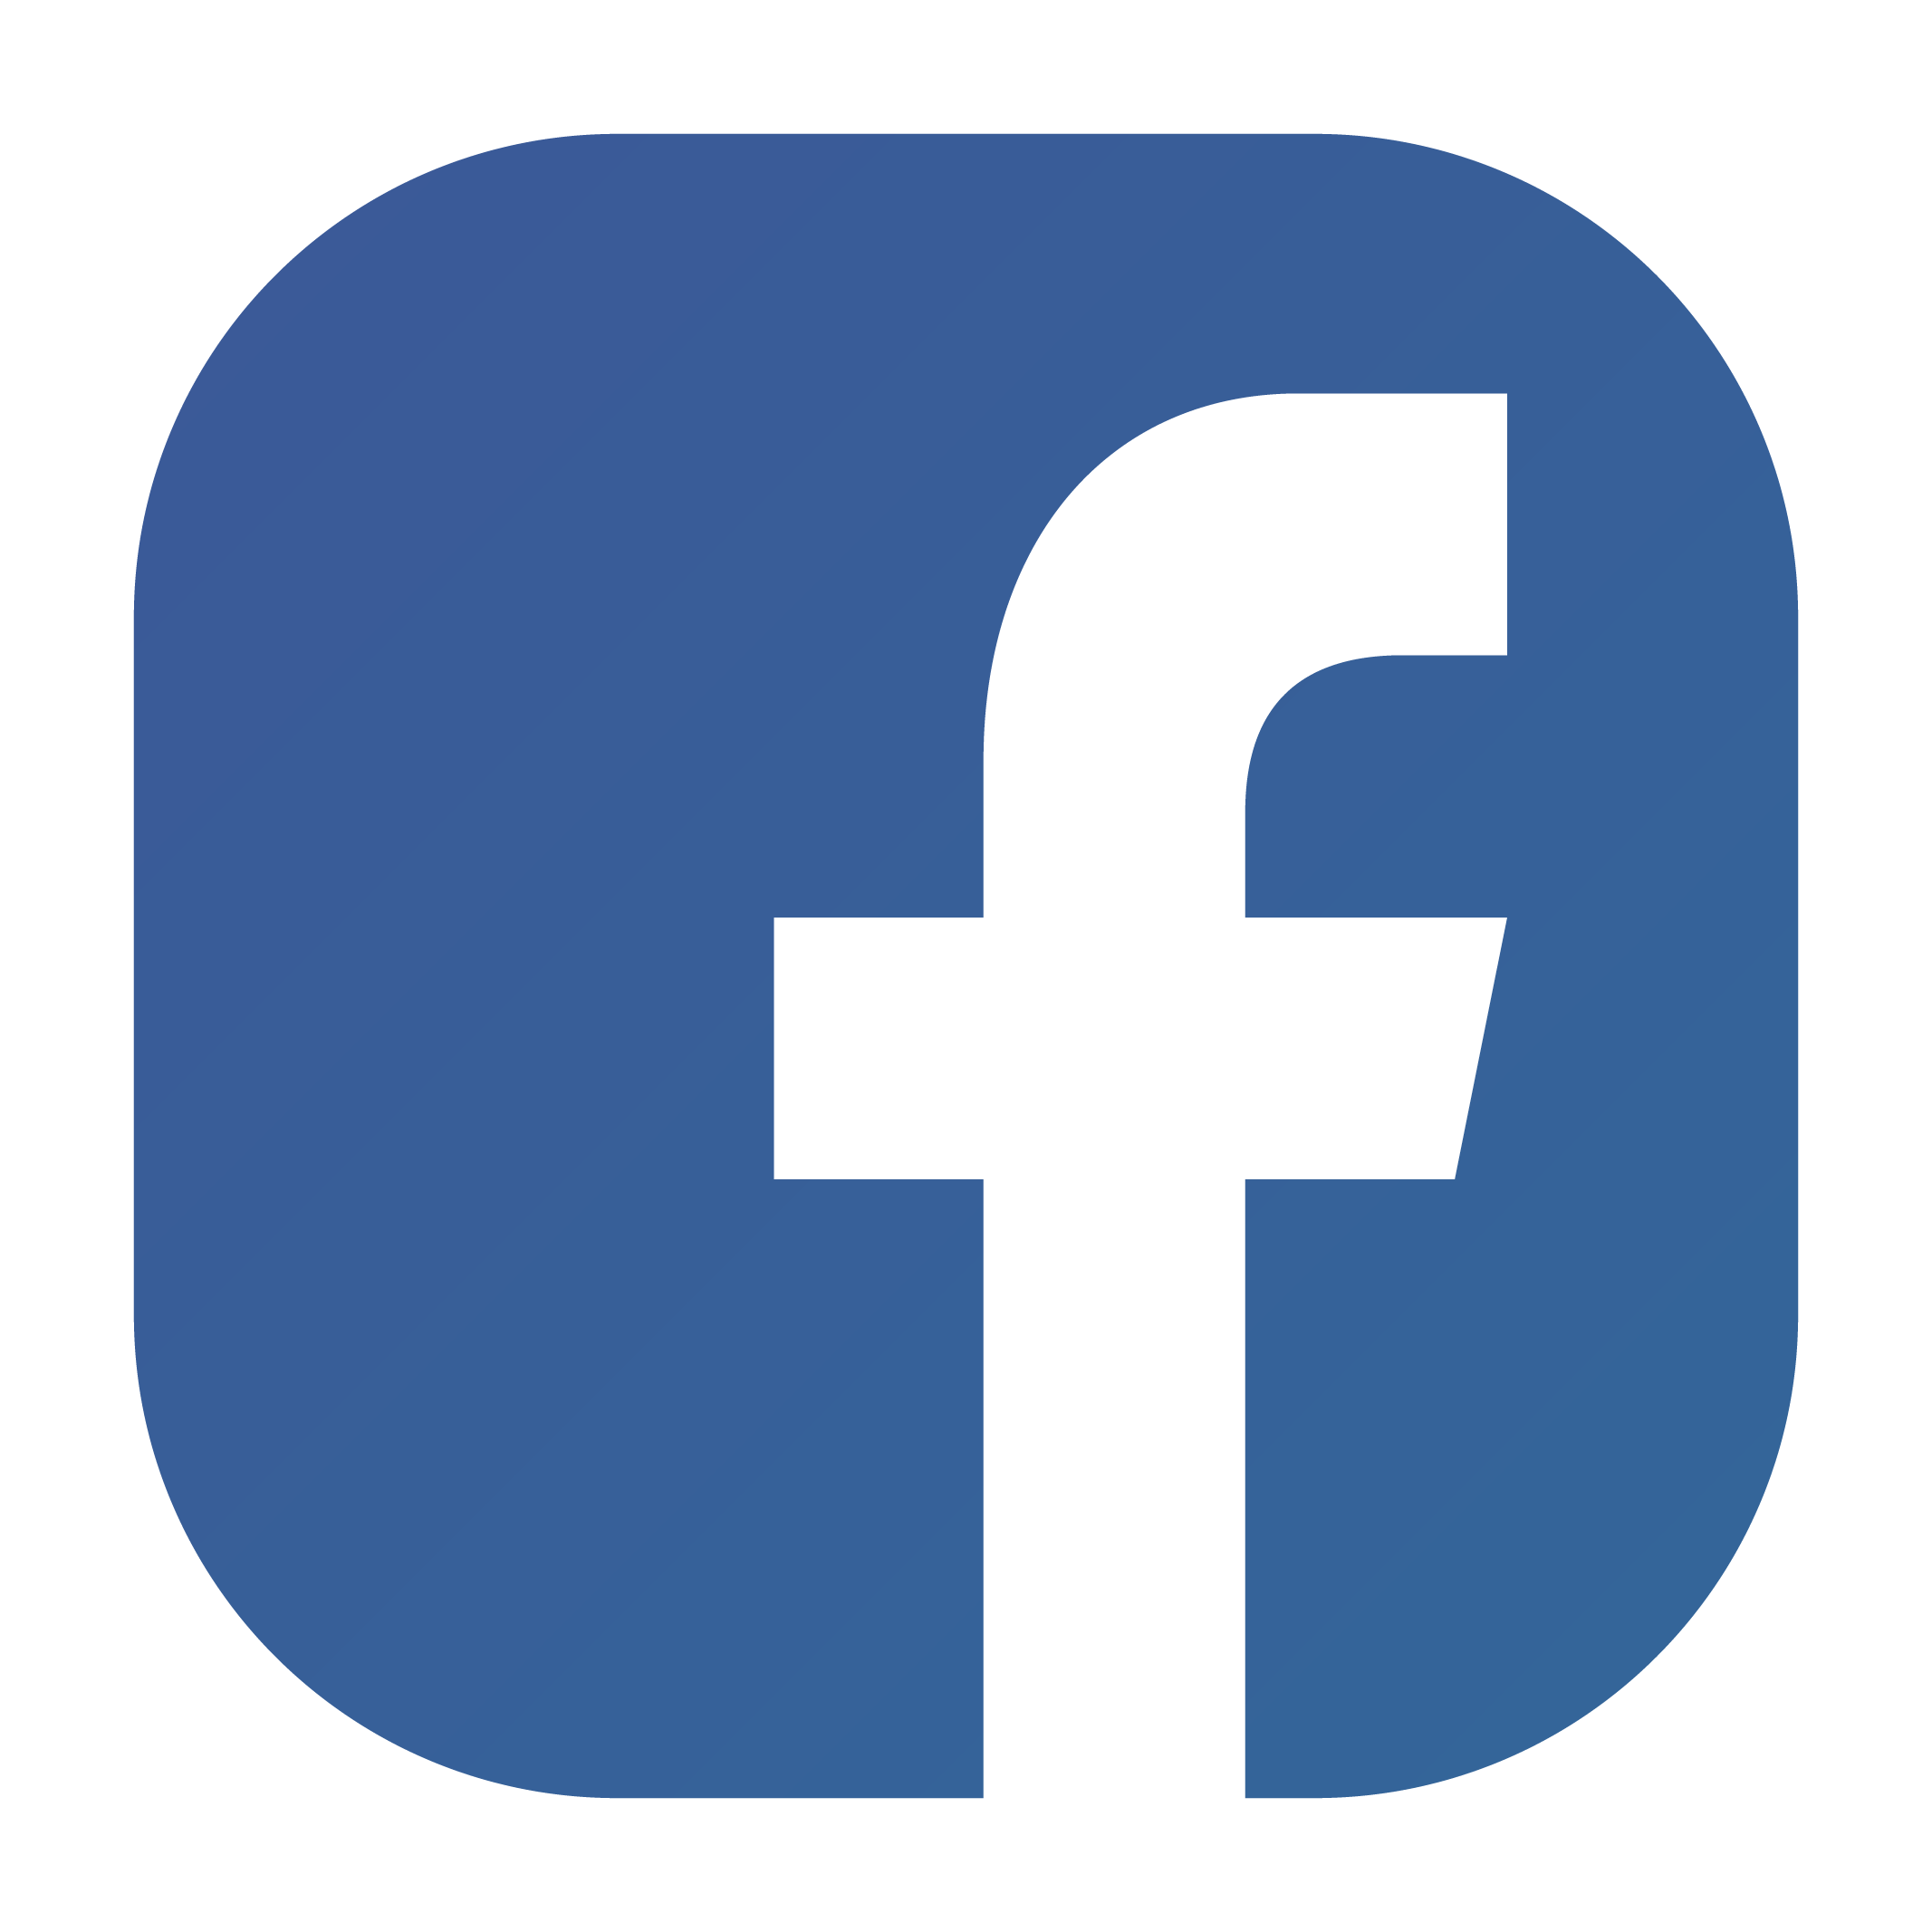 logo-social-fb-facebook-icon - verfvanniveau.nl